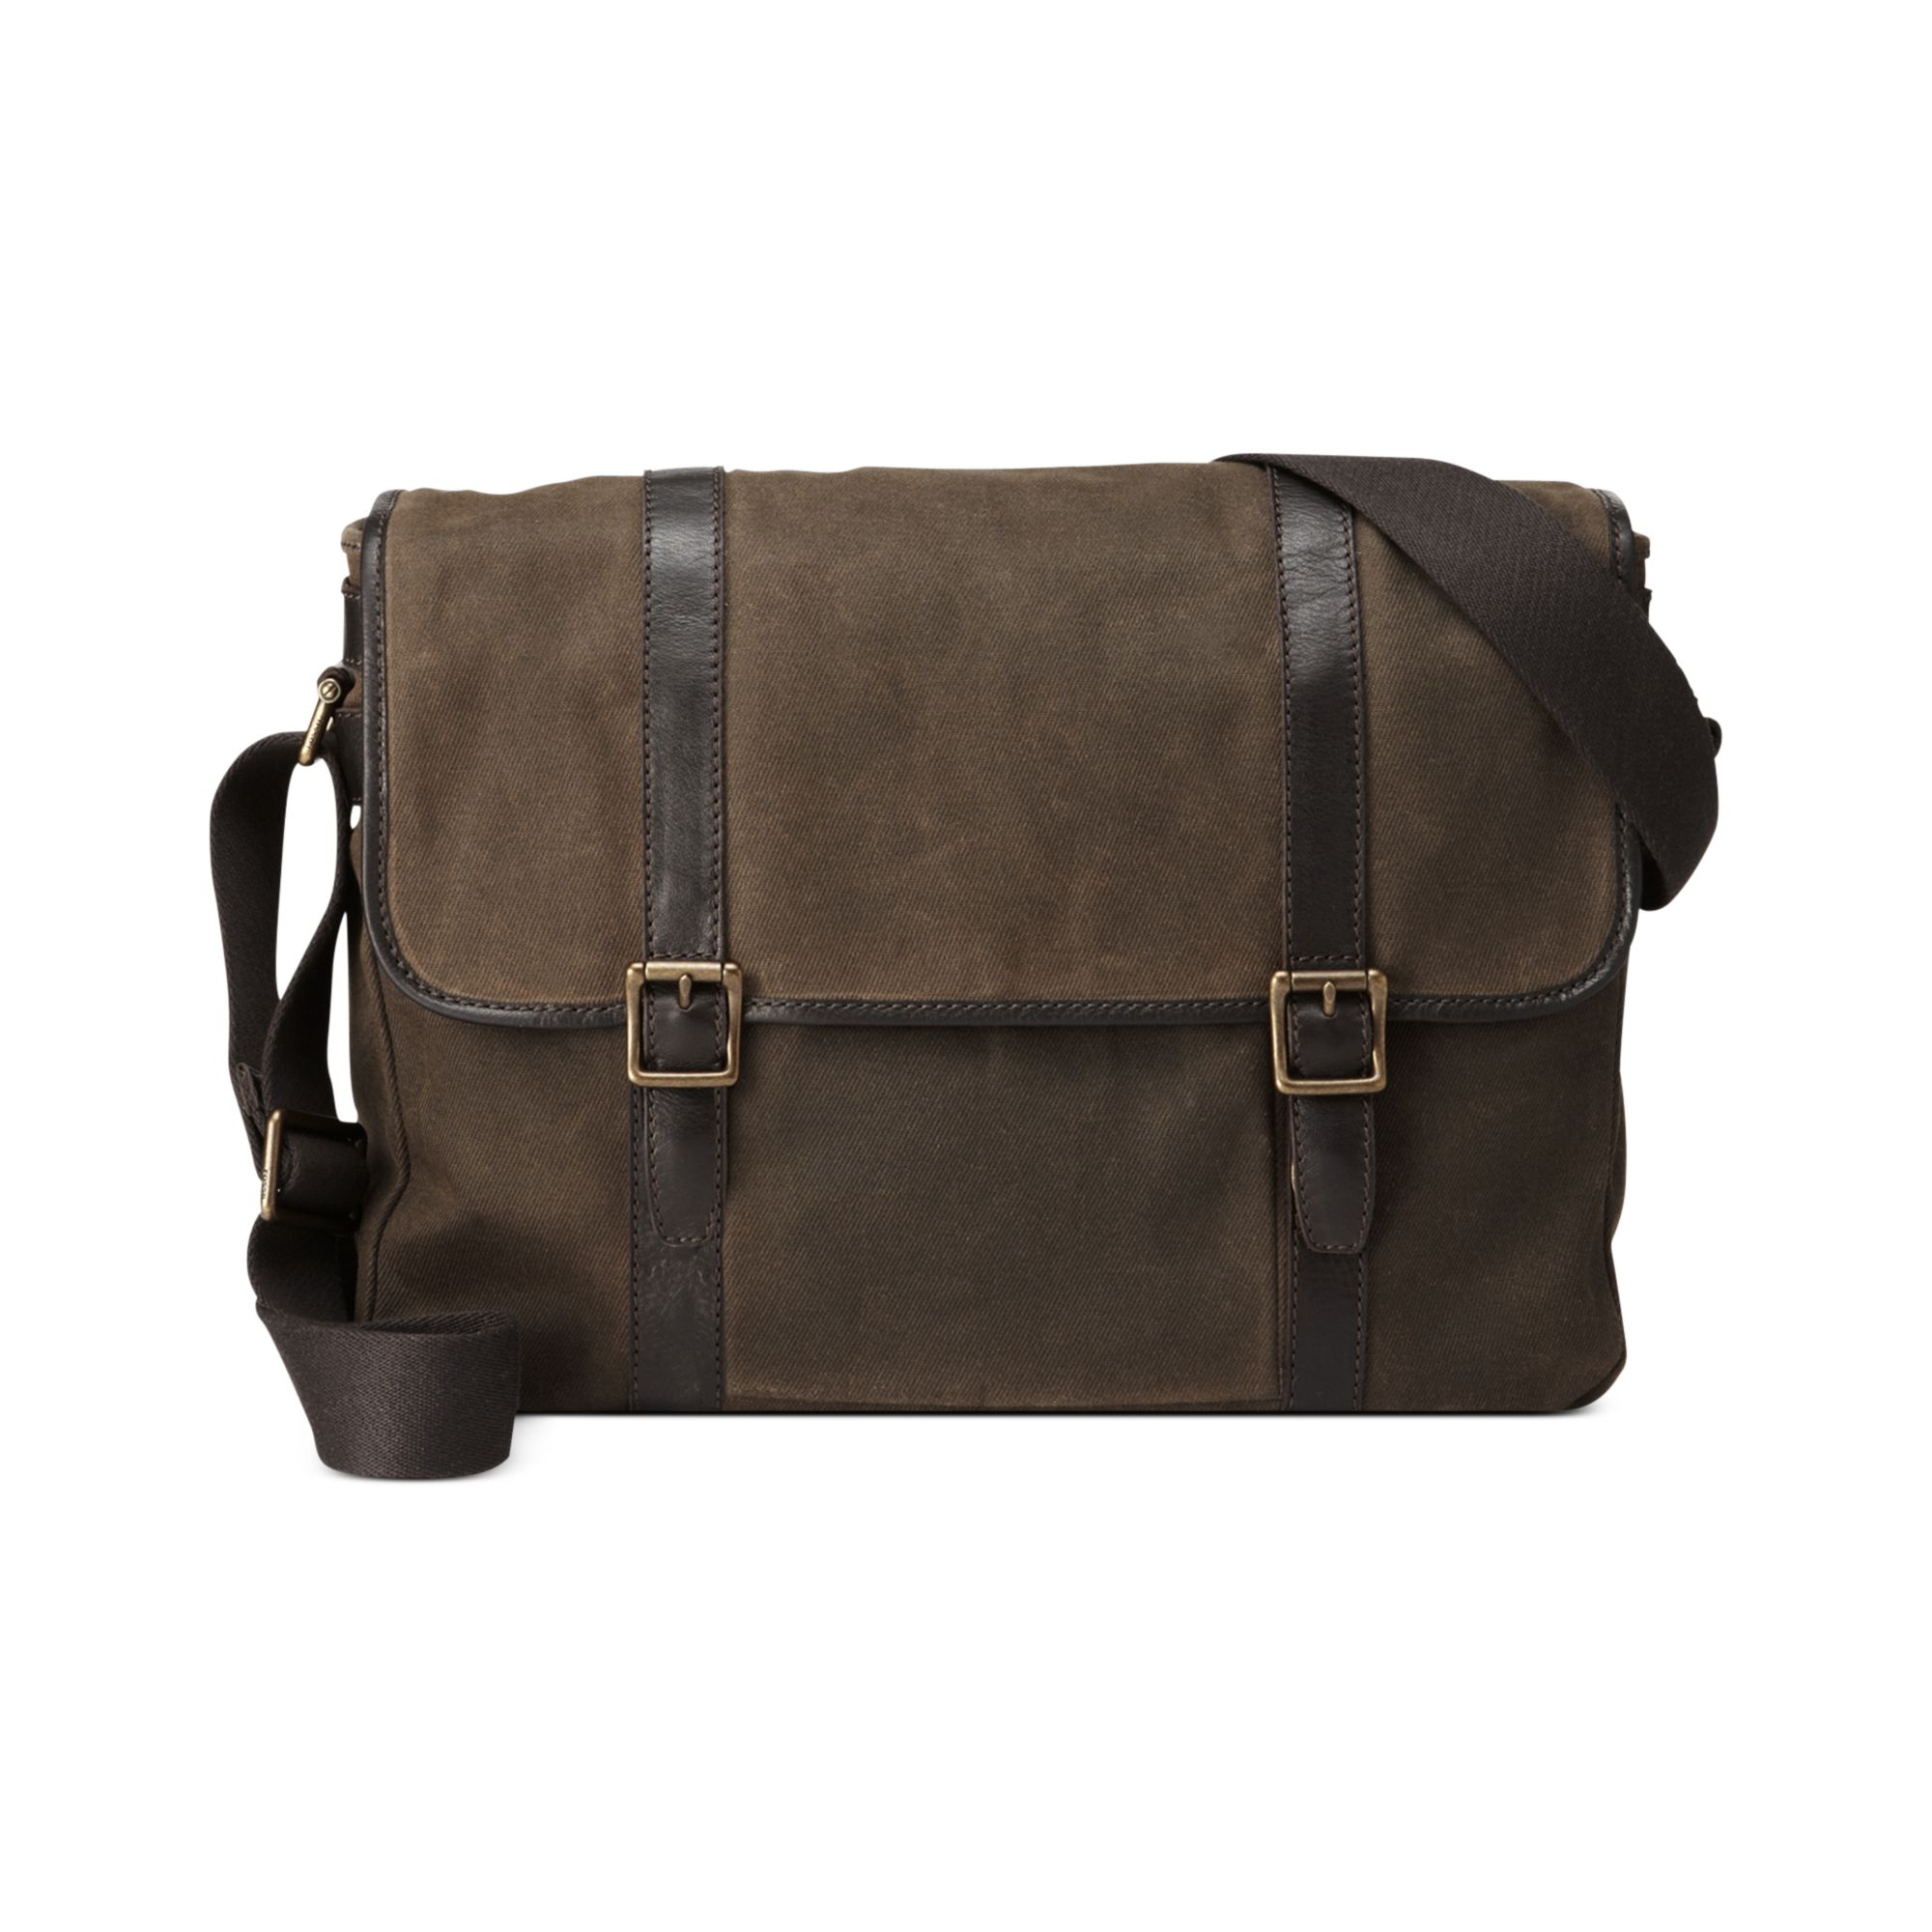 32a9b83cfe Fossil Estate Calvary Twill East West Messenger Bag in Natural for ...